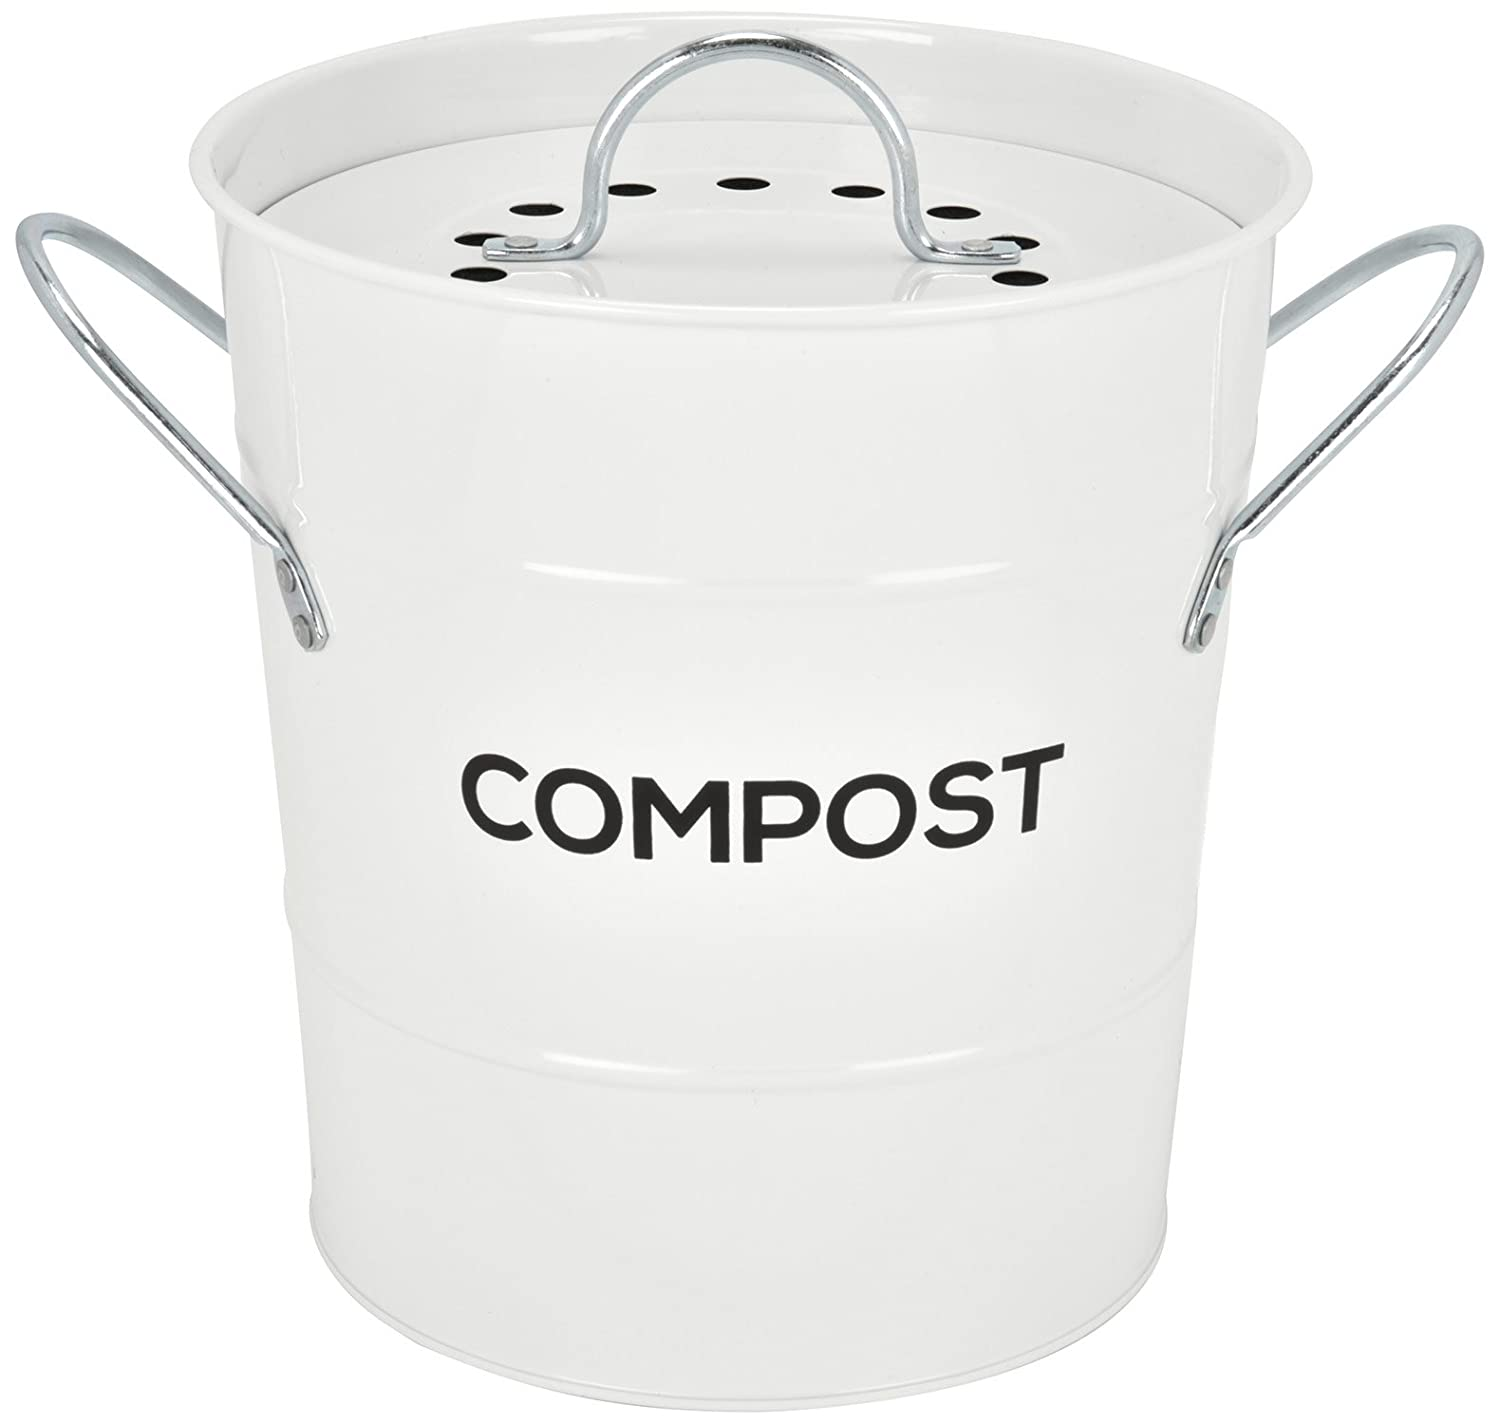 INDOOR KITCHEN COMPOST BIN by Spigo, Great for Food Scraps, Includes Charcoal Filter For Odor Absorbing, Removable Clean Plastic Bucket, Handles, Durable Stainless Retro Design, 1 Gallon, White